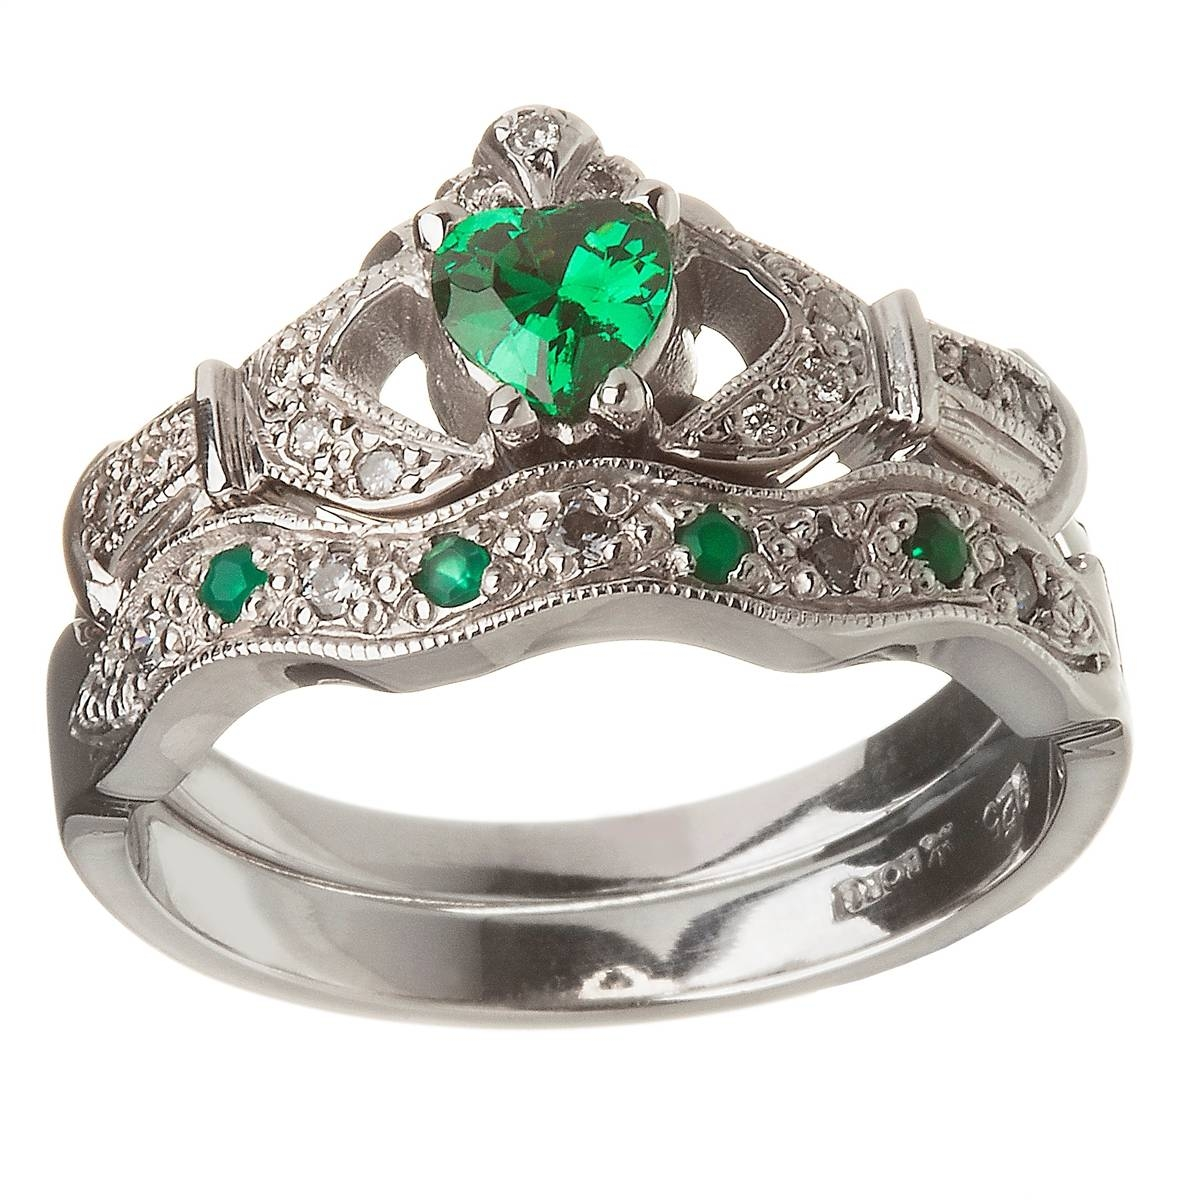 14K White Gold Emerald Set Heart Claddagh Ring & Wedding Ring Set Pertaining To Diamond Claddagh Engagement & Wedding Ring Sets (Gallery 3 of 15)